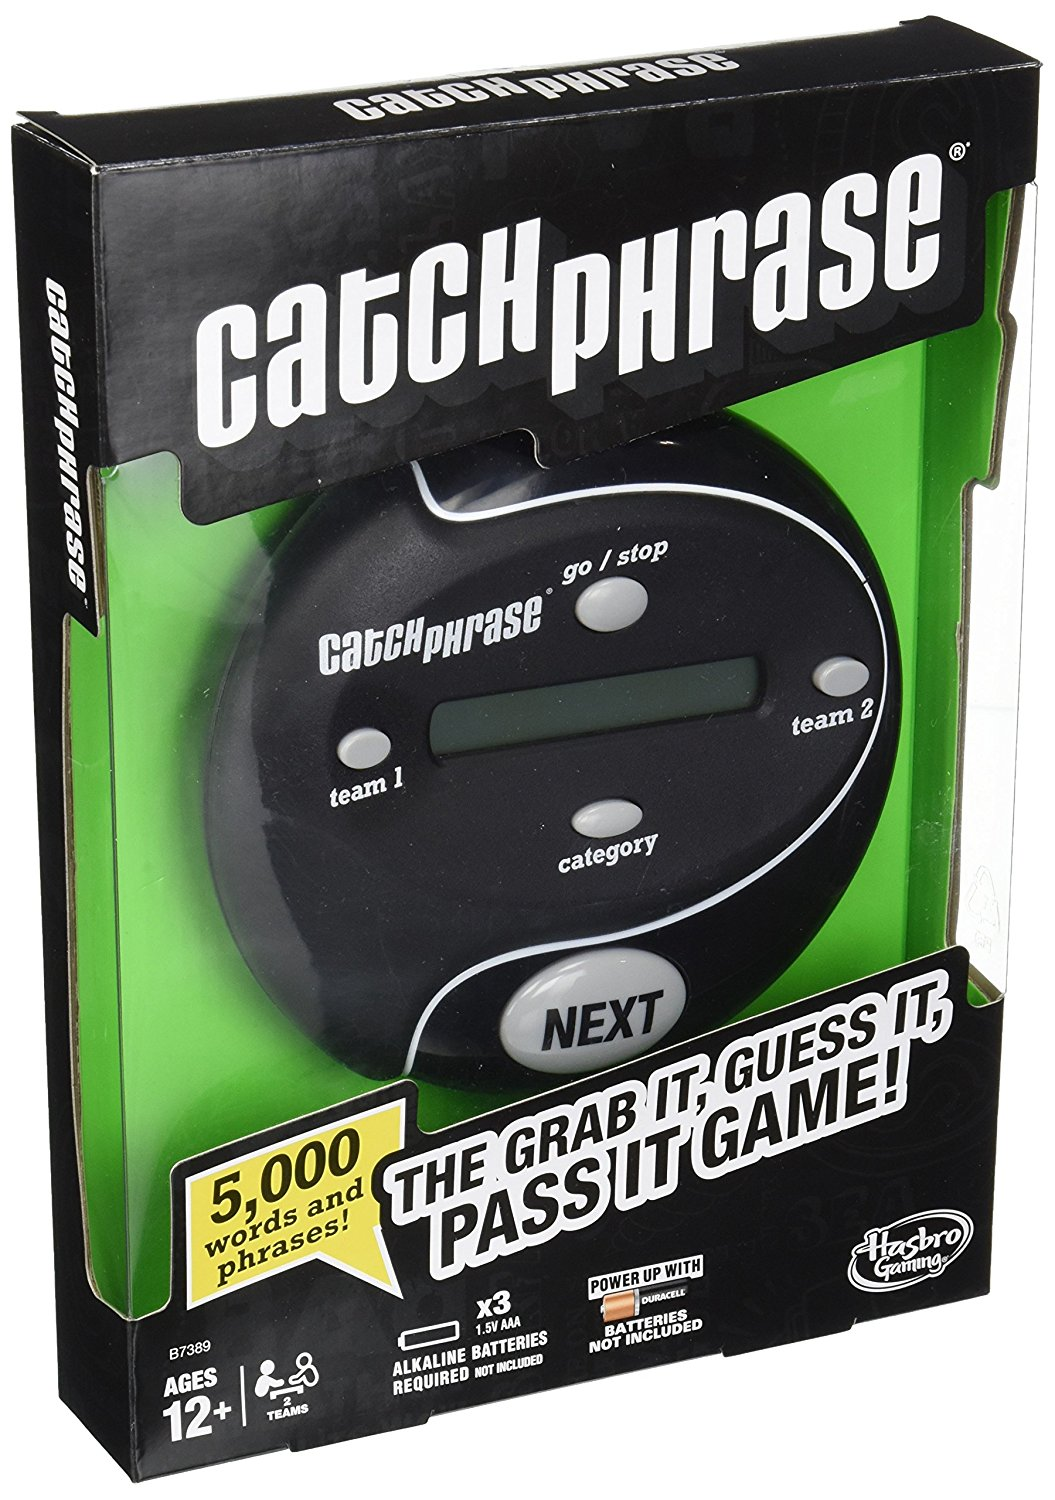 Catchphrase board game instructions